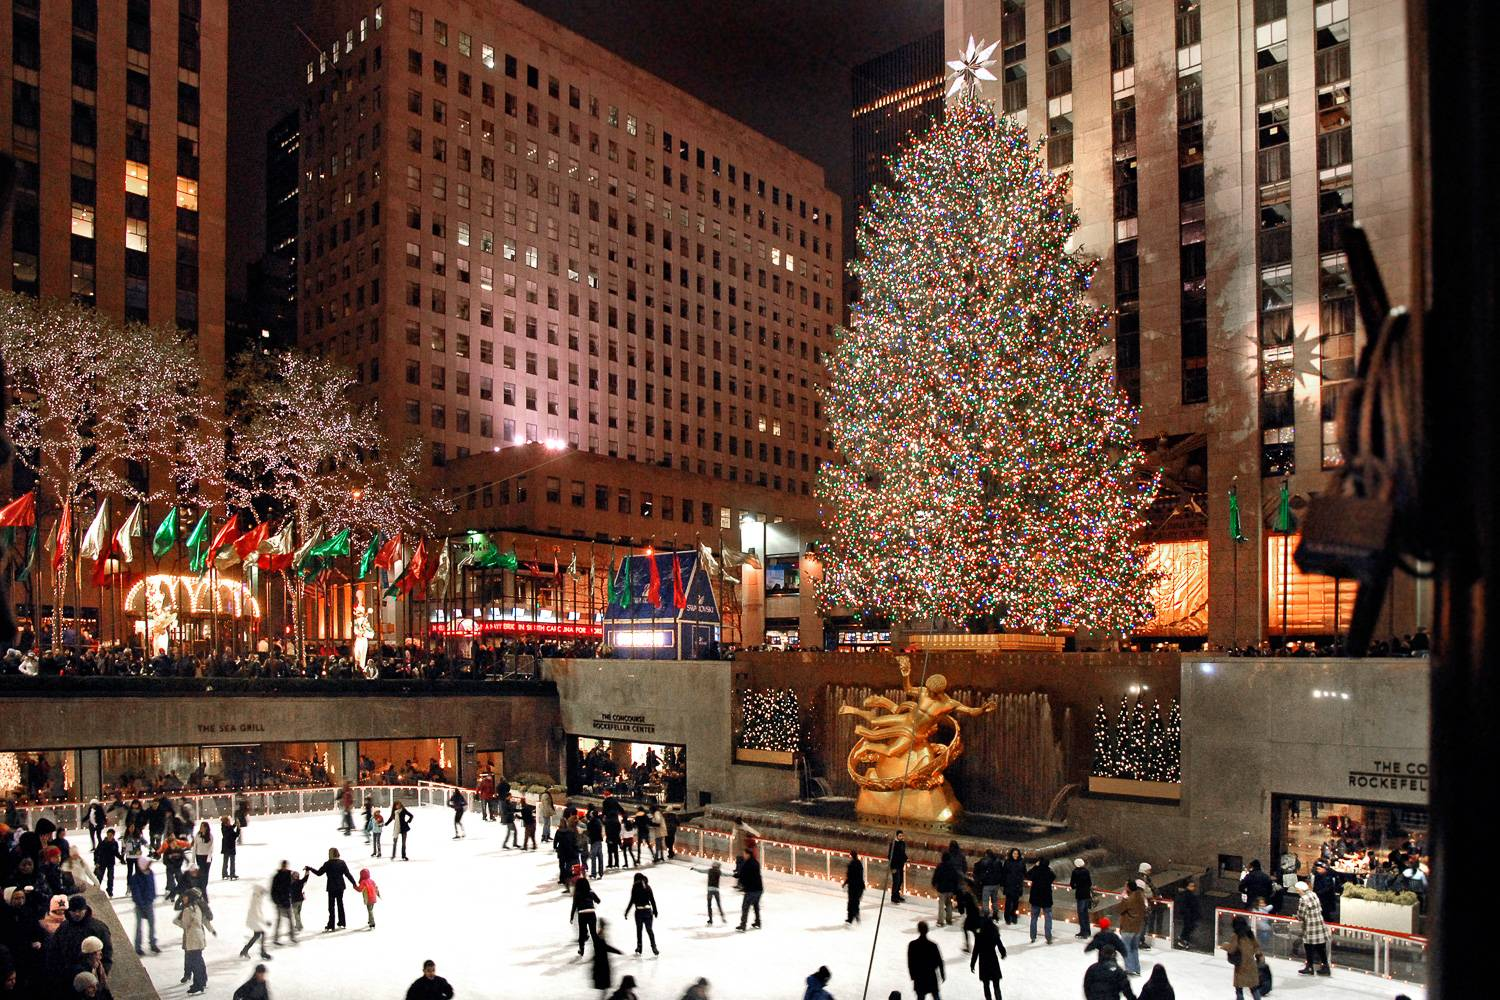 Photo de la patinoire du Rockefeller Center durant la période de Noël